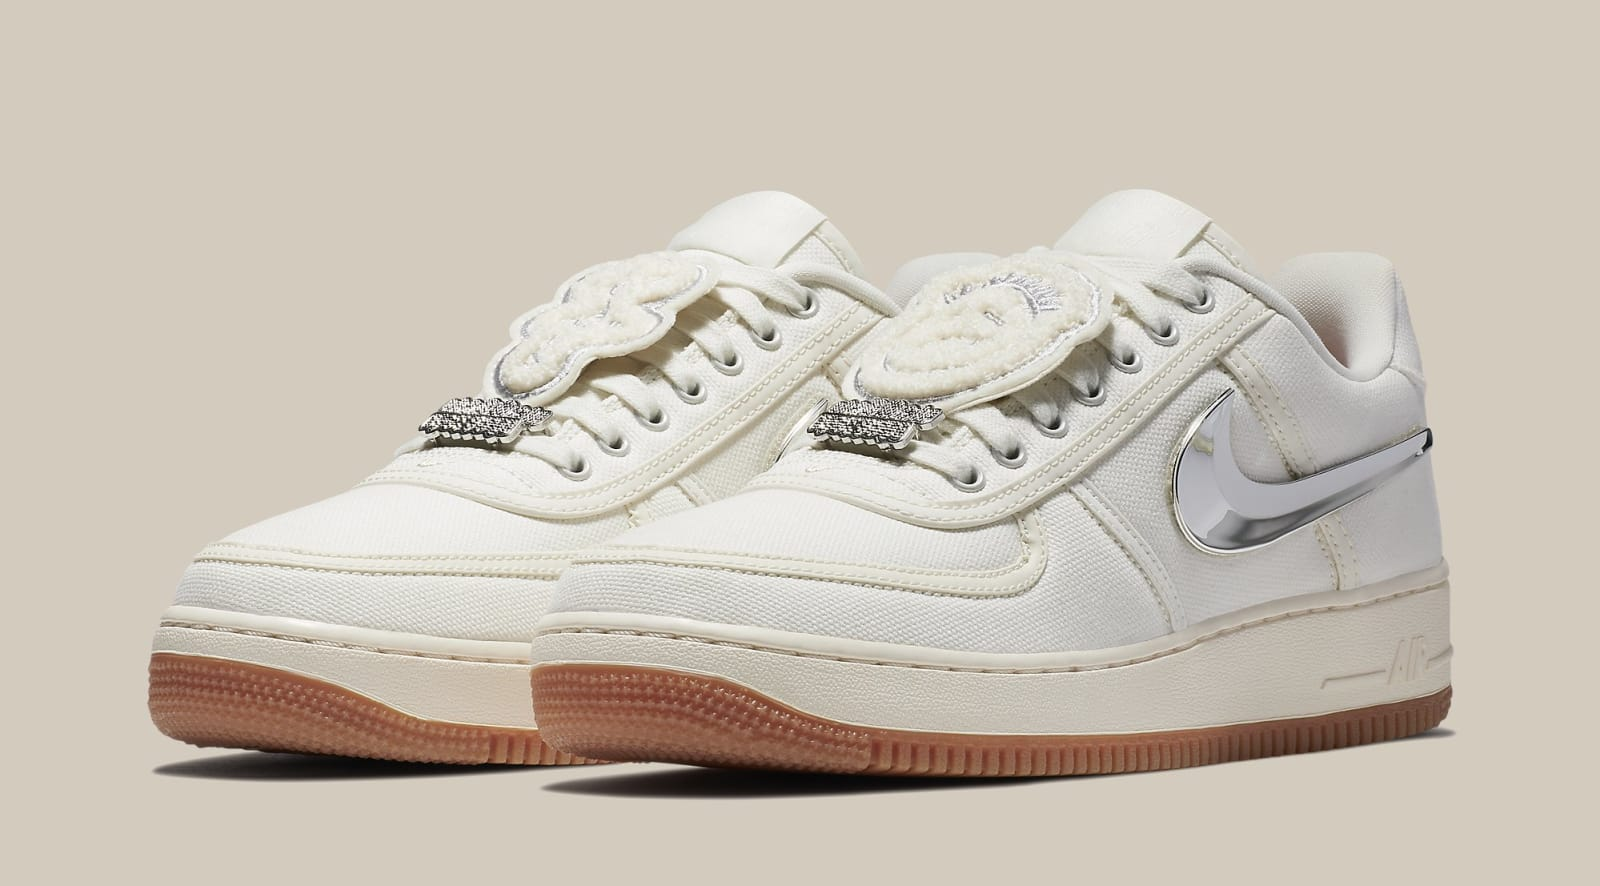 pretty nice 09a12 c2244 ... discount code for nike air force 1 low c477c bb011